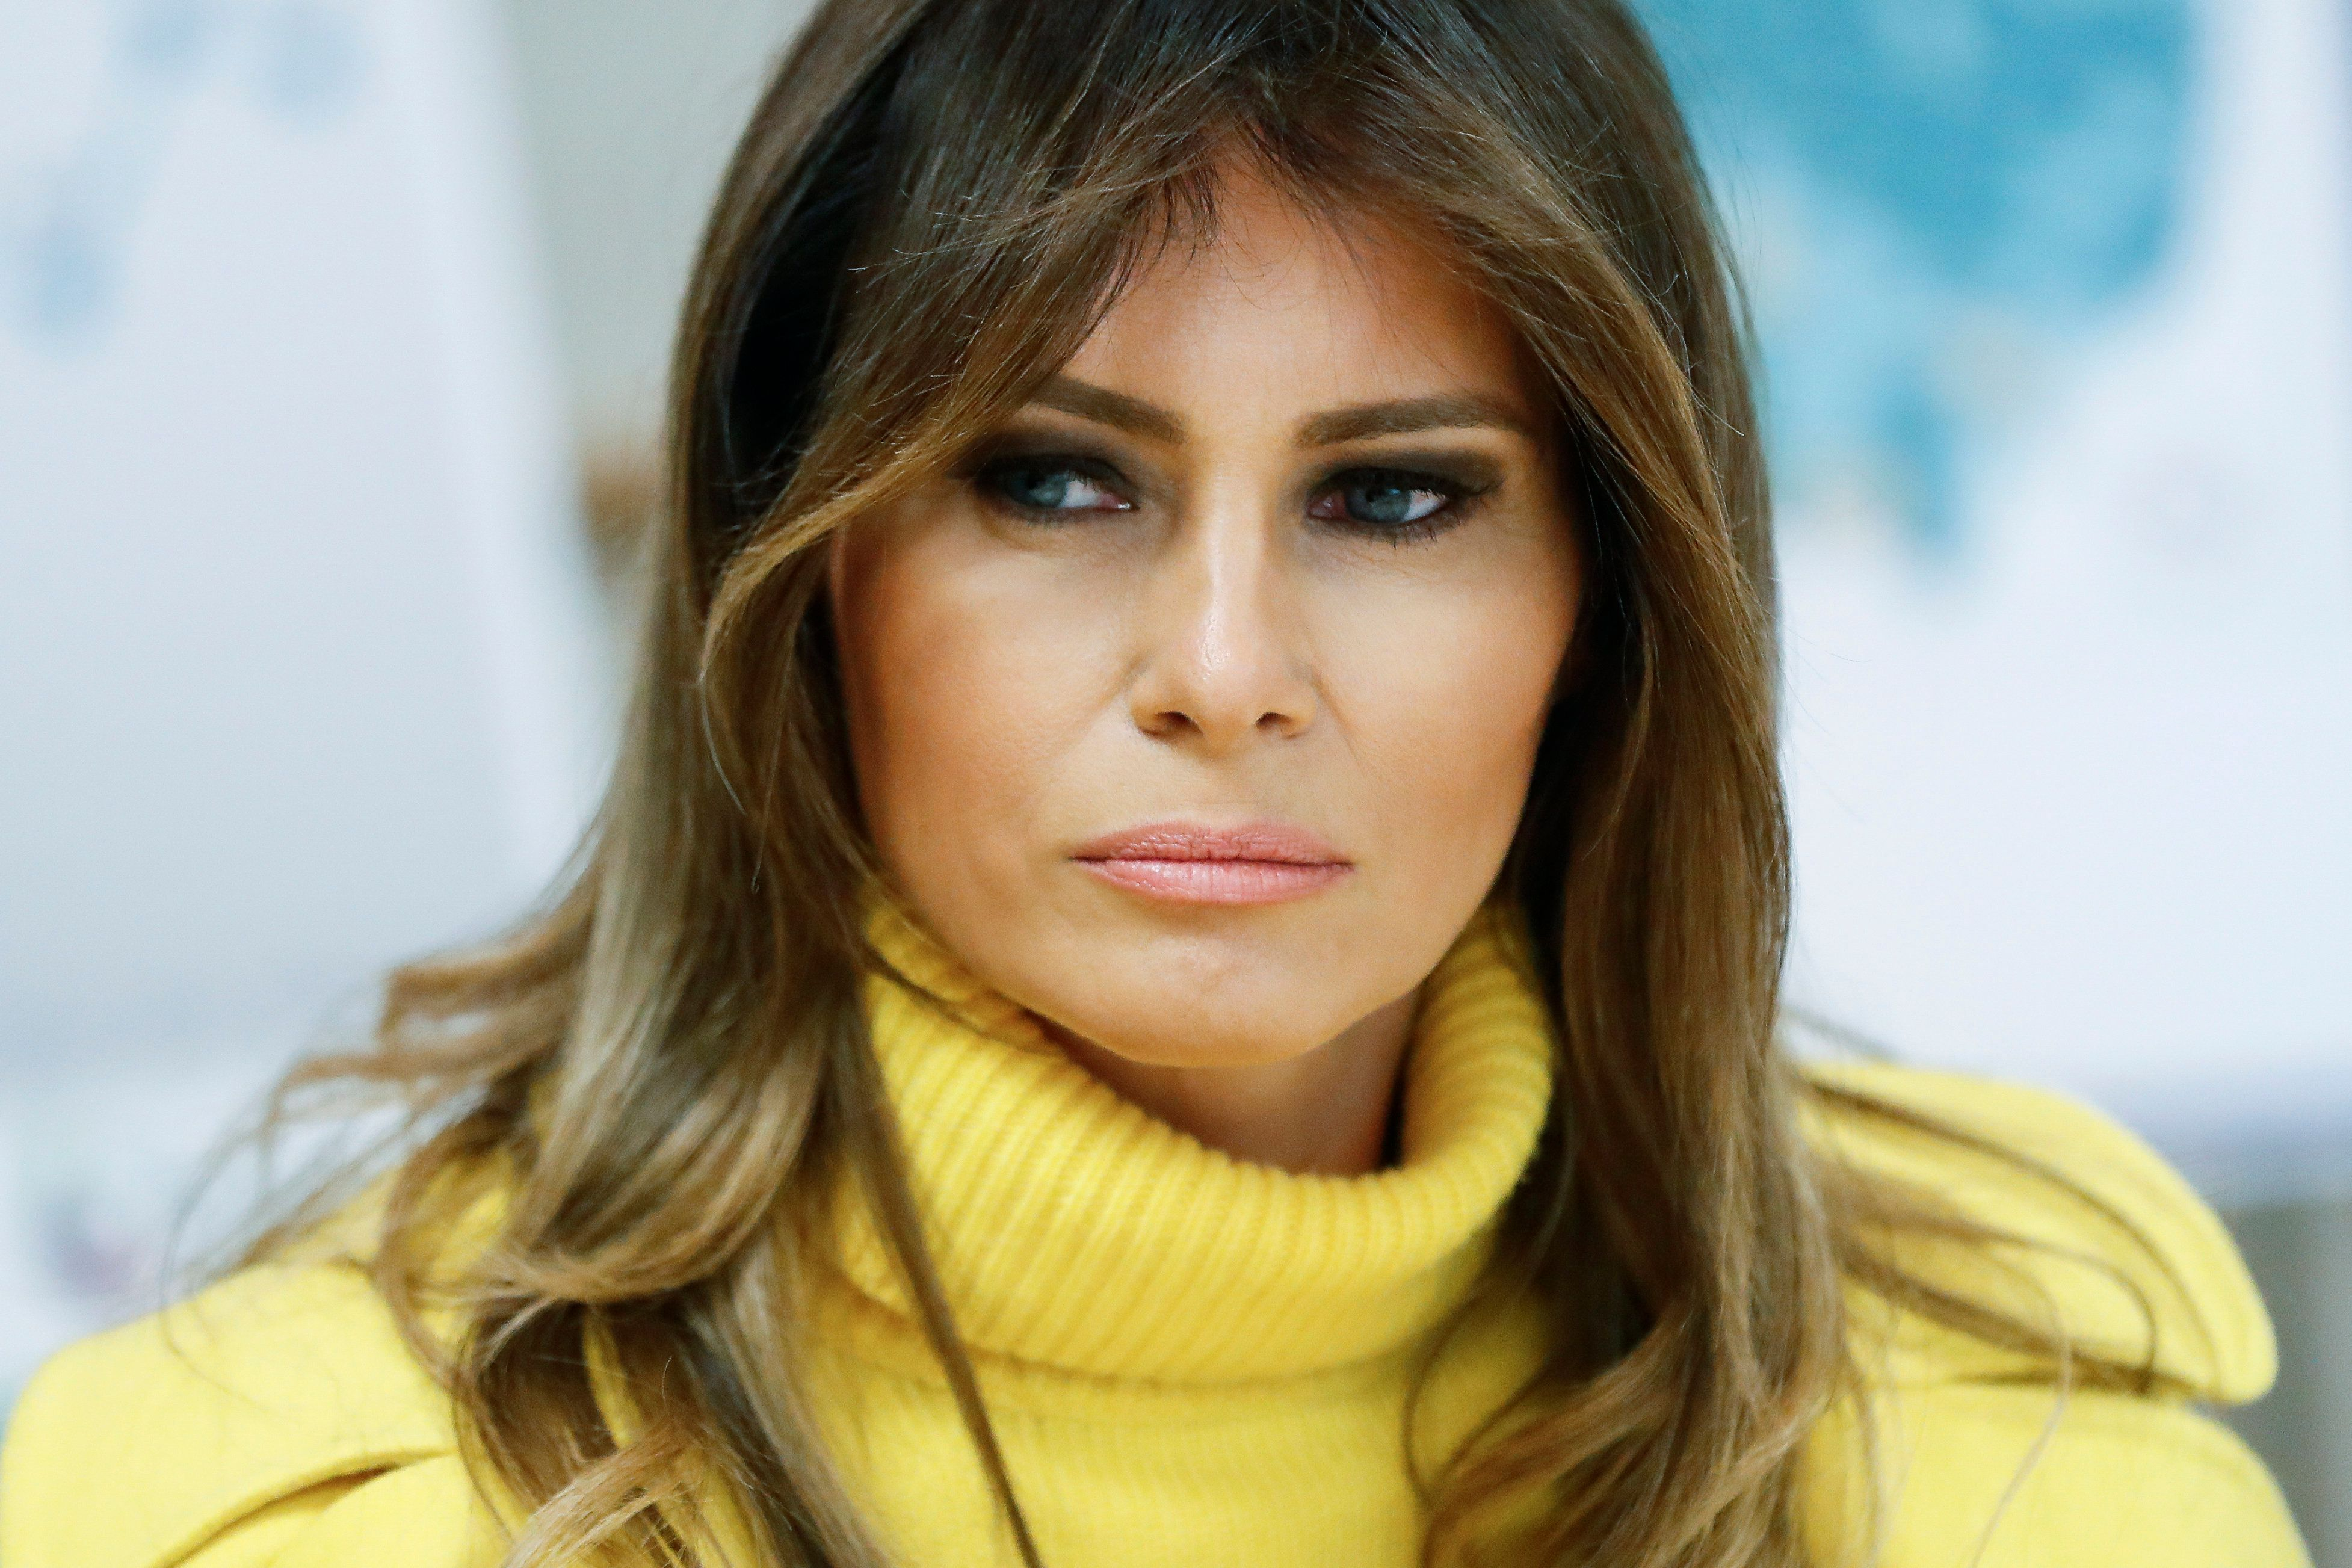 "In this Feb. 5, 2018 photo, first lady Melania Trump listens as she meets with personnel at Cincinnati Children's Hospital Medical Center, in Cincinnati. Melania Trump has cut ties with an adviser whose firm was paid $26 million to help plan the president's inauguration. Mrs. Trump's spokeswoman, Stephanie Grisham, confirms Tuesday that the first lady's office has ""severed the gratuitous services contract"" it had with Stephanie Winston Wolkoff.  (AP Photo/John Minchillo)"